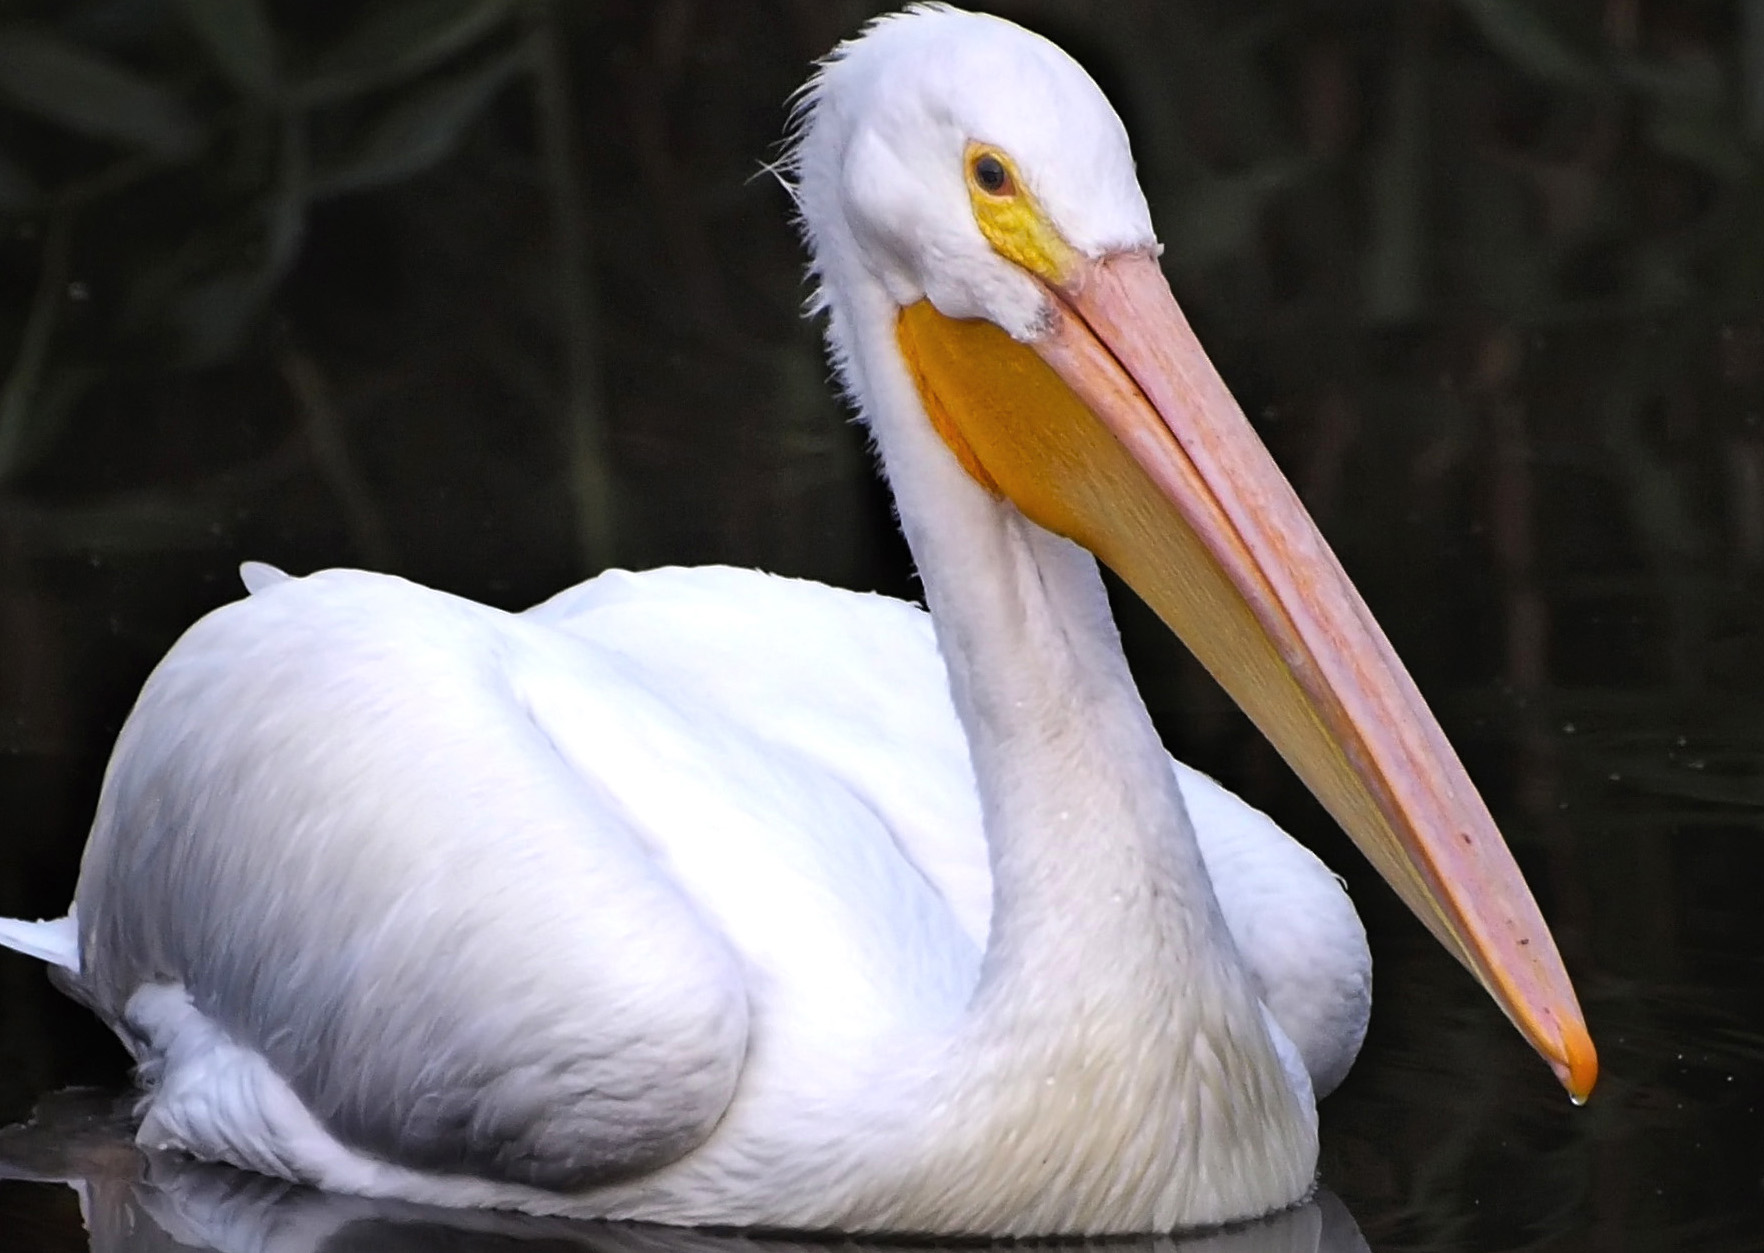 American white pelican (Pelecanus erythrorhynchos). Photo by Ingrid Taylar.